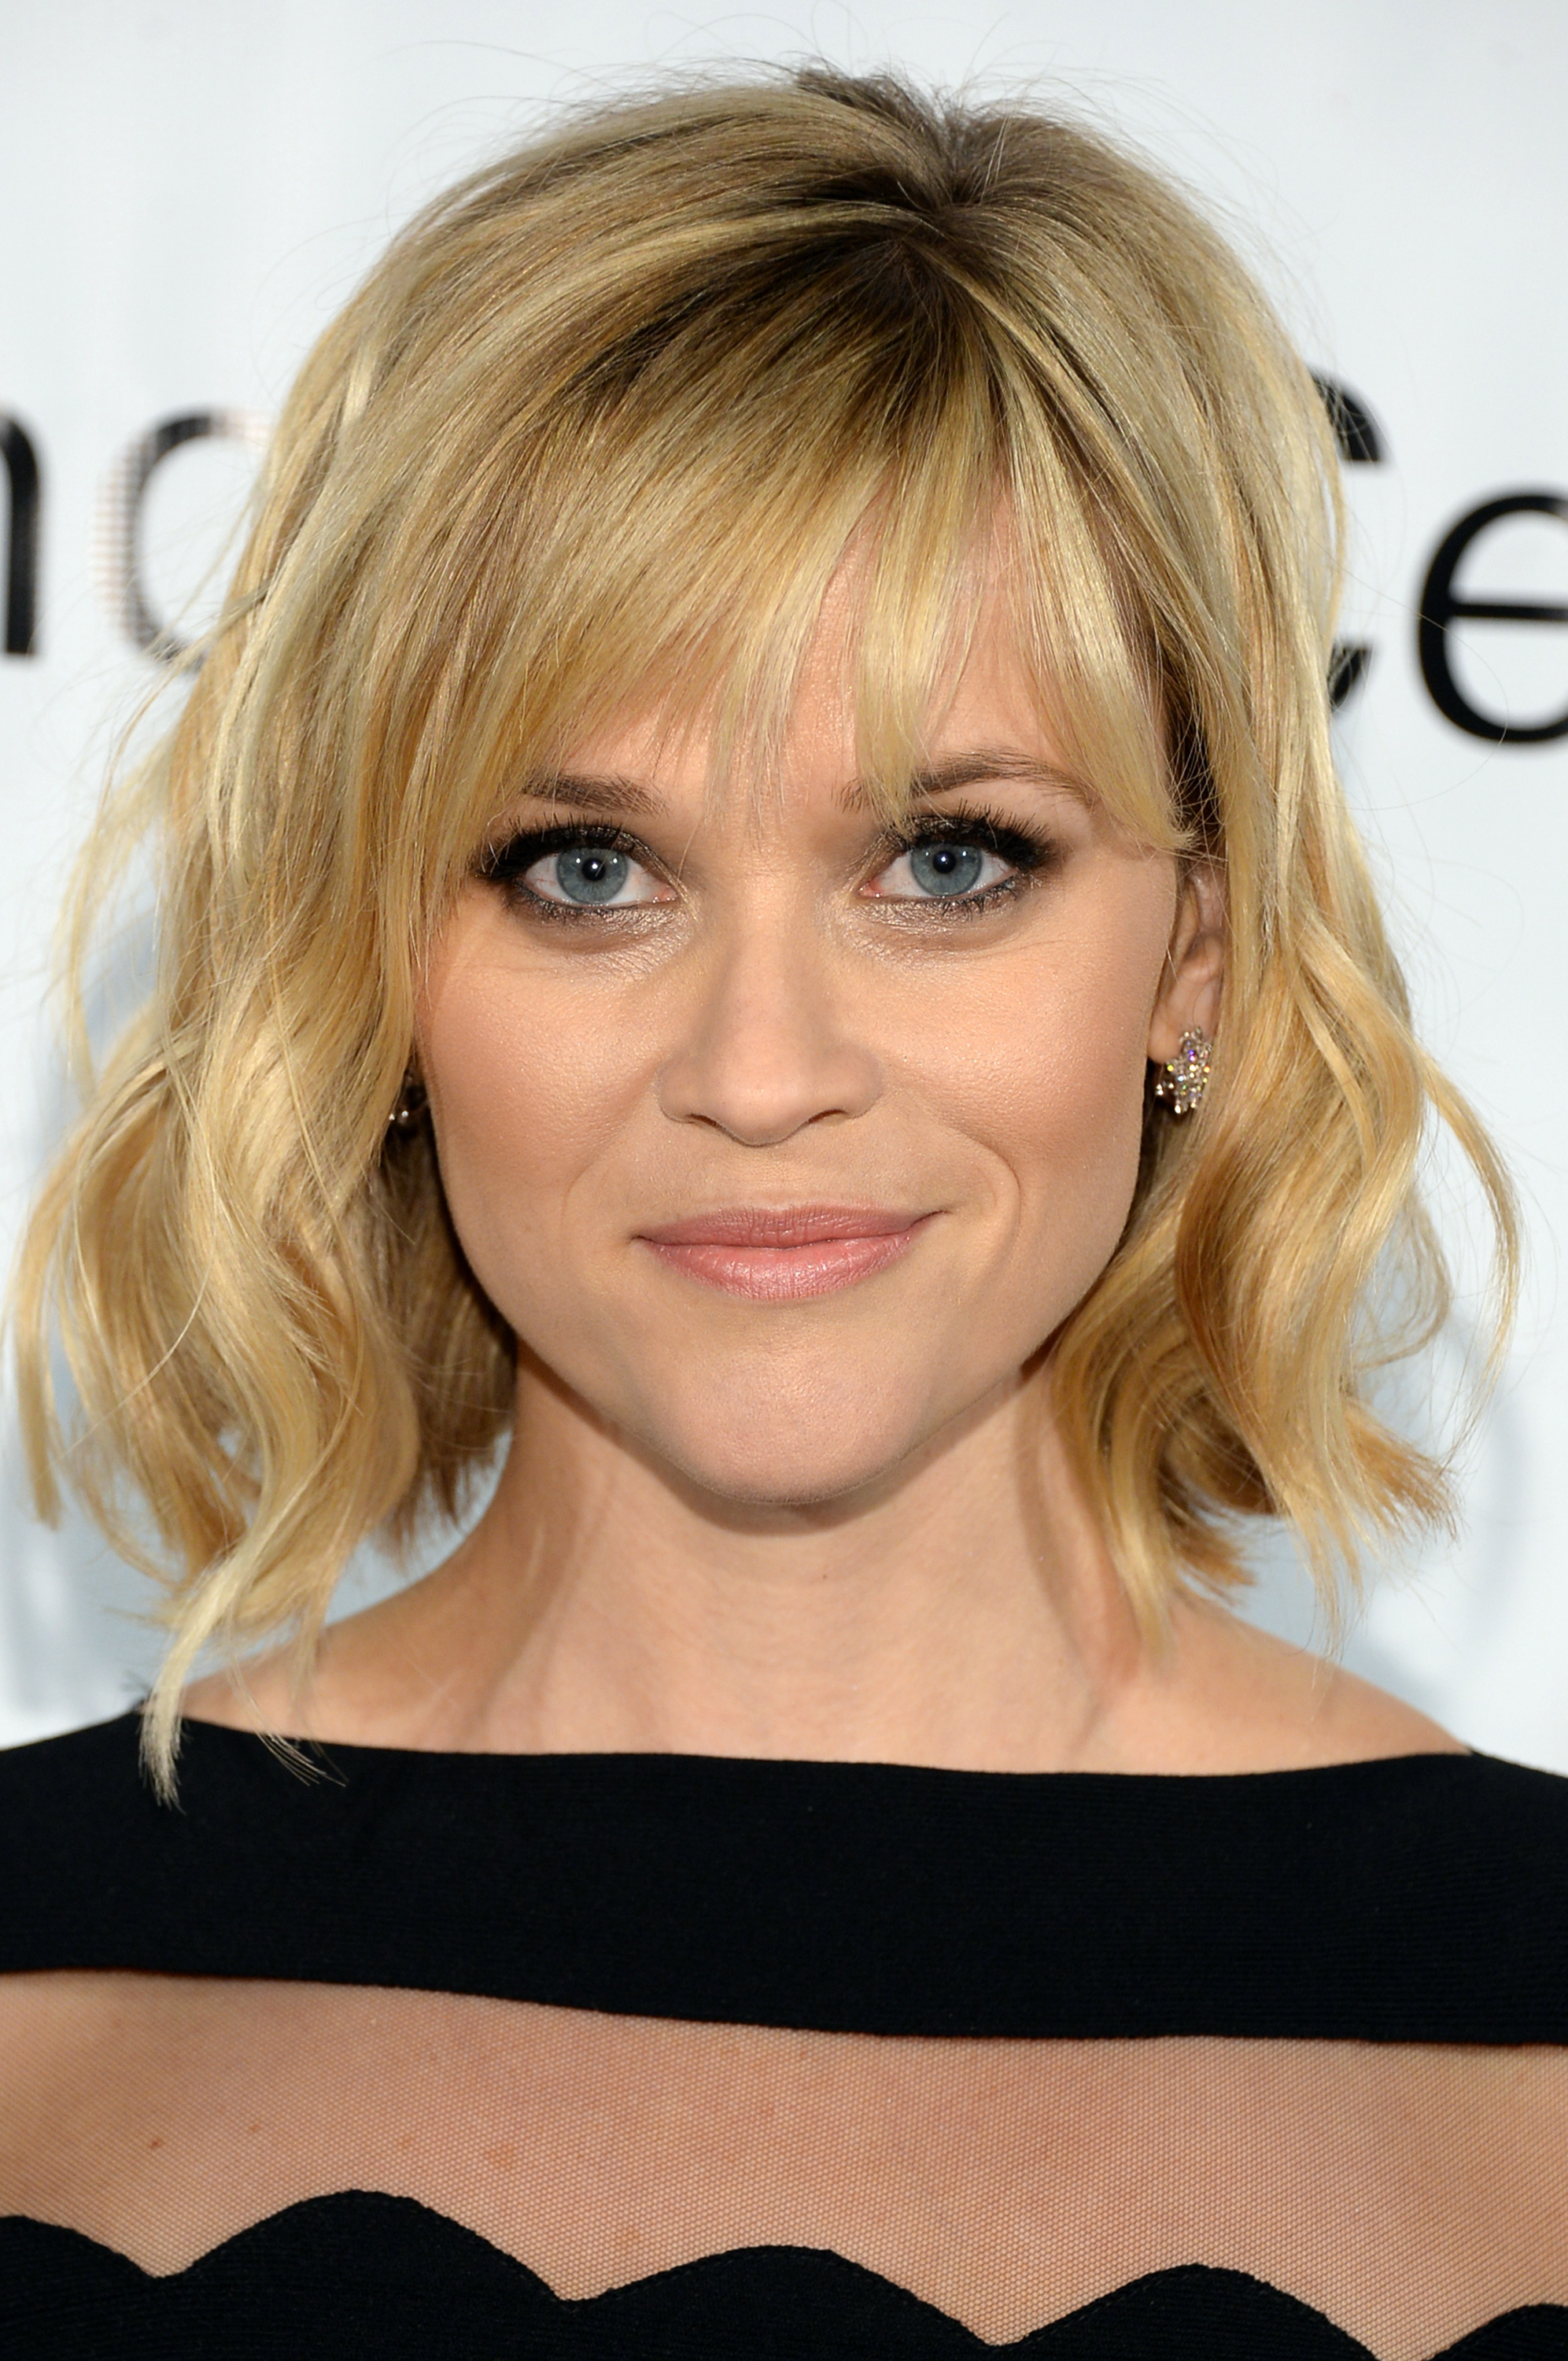 Pleasing 27 Hairstyles For Thin Hair Best Haircuts For Thinning Hair Short Hairstyles Gunalazisus